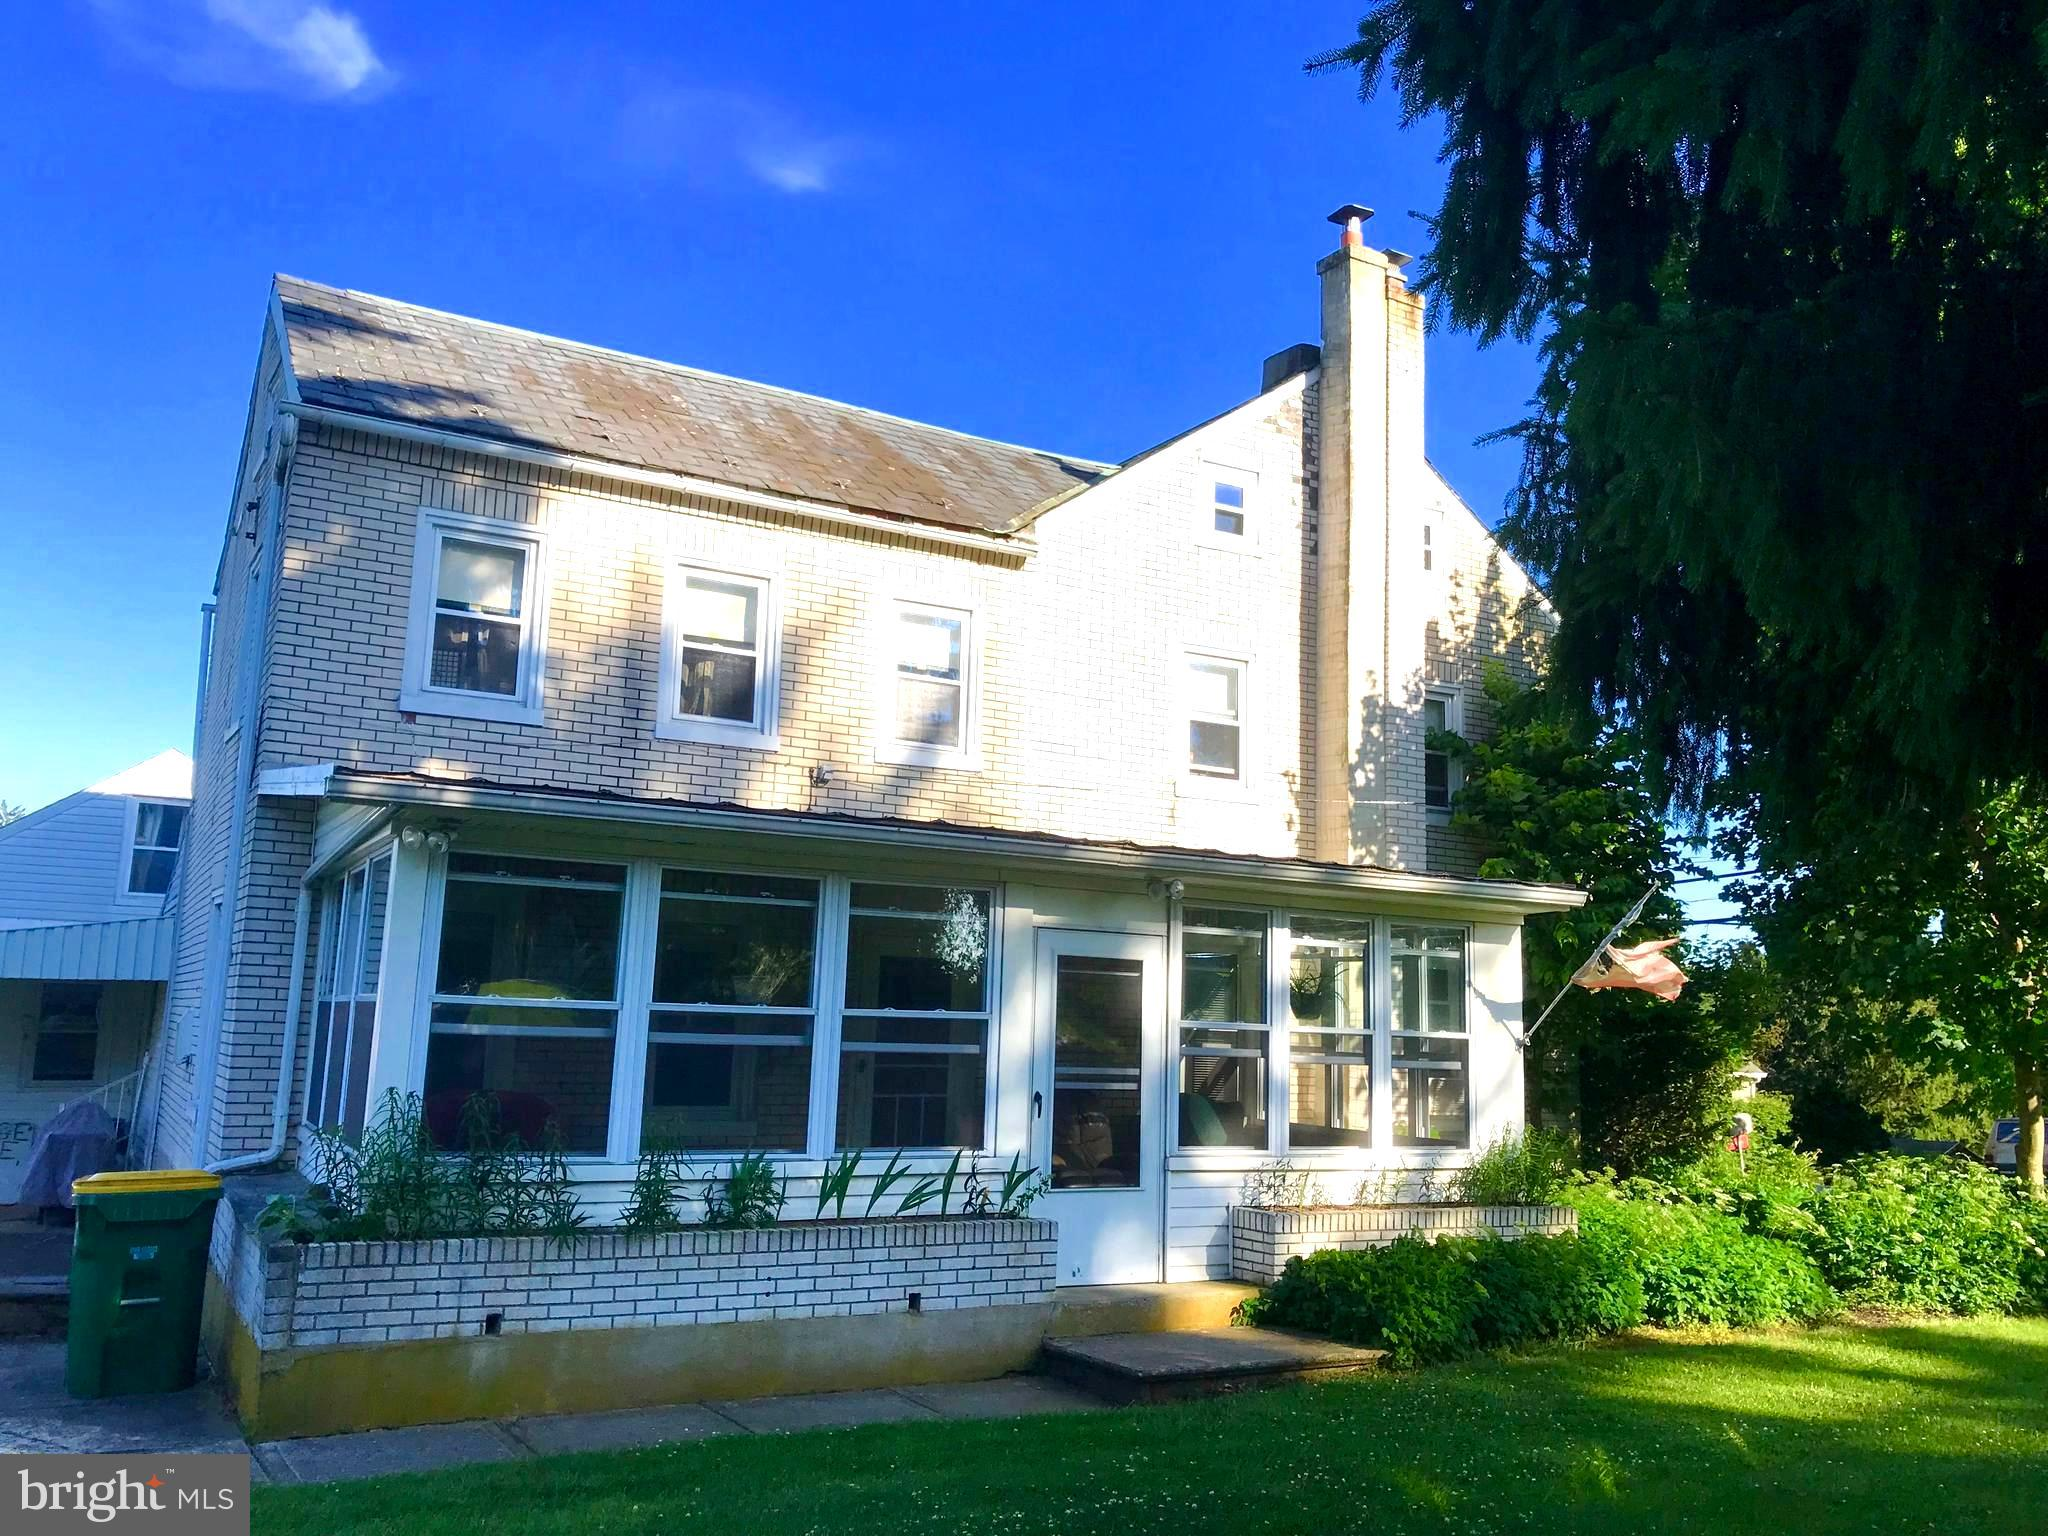 4915 LOWER MACUNGIE ROAD, MACUNGIE, PA 18062